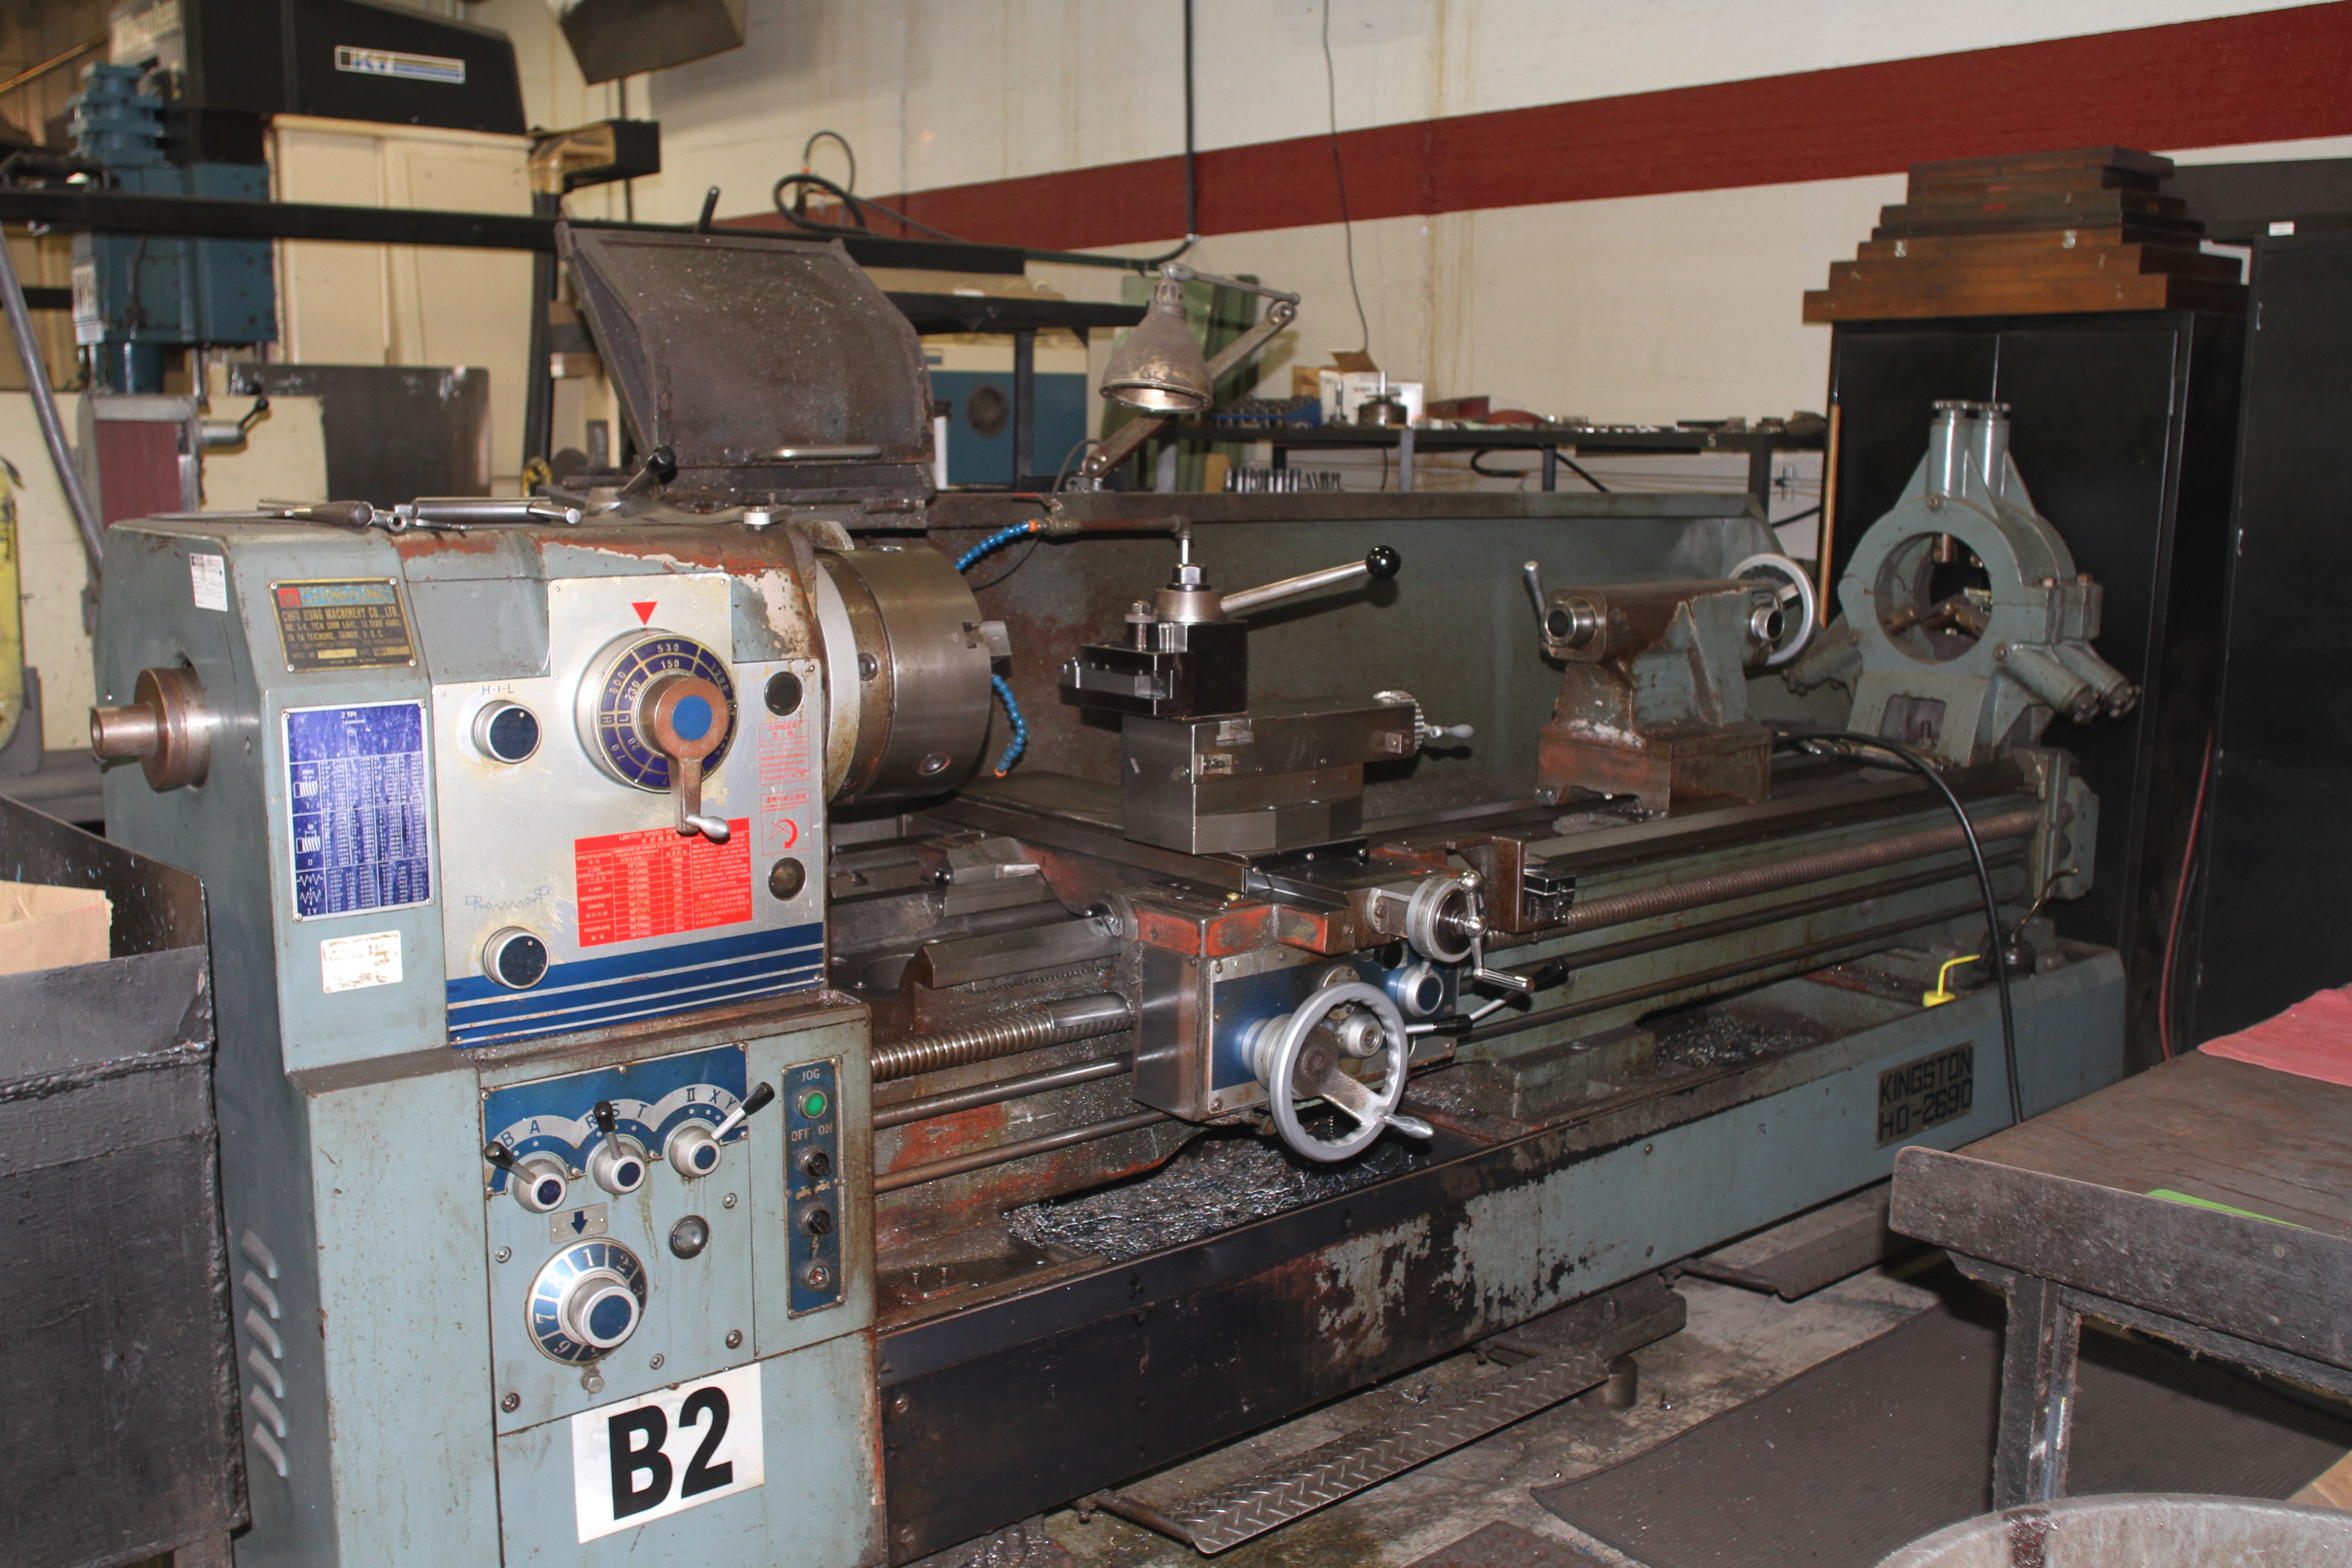 Kingston lathe